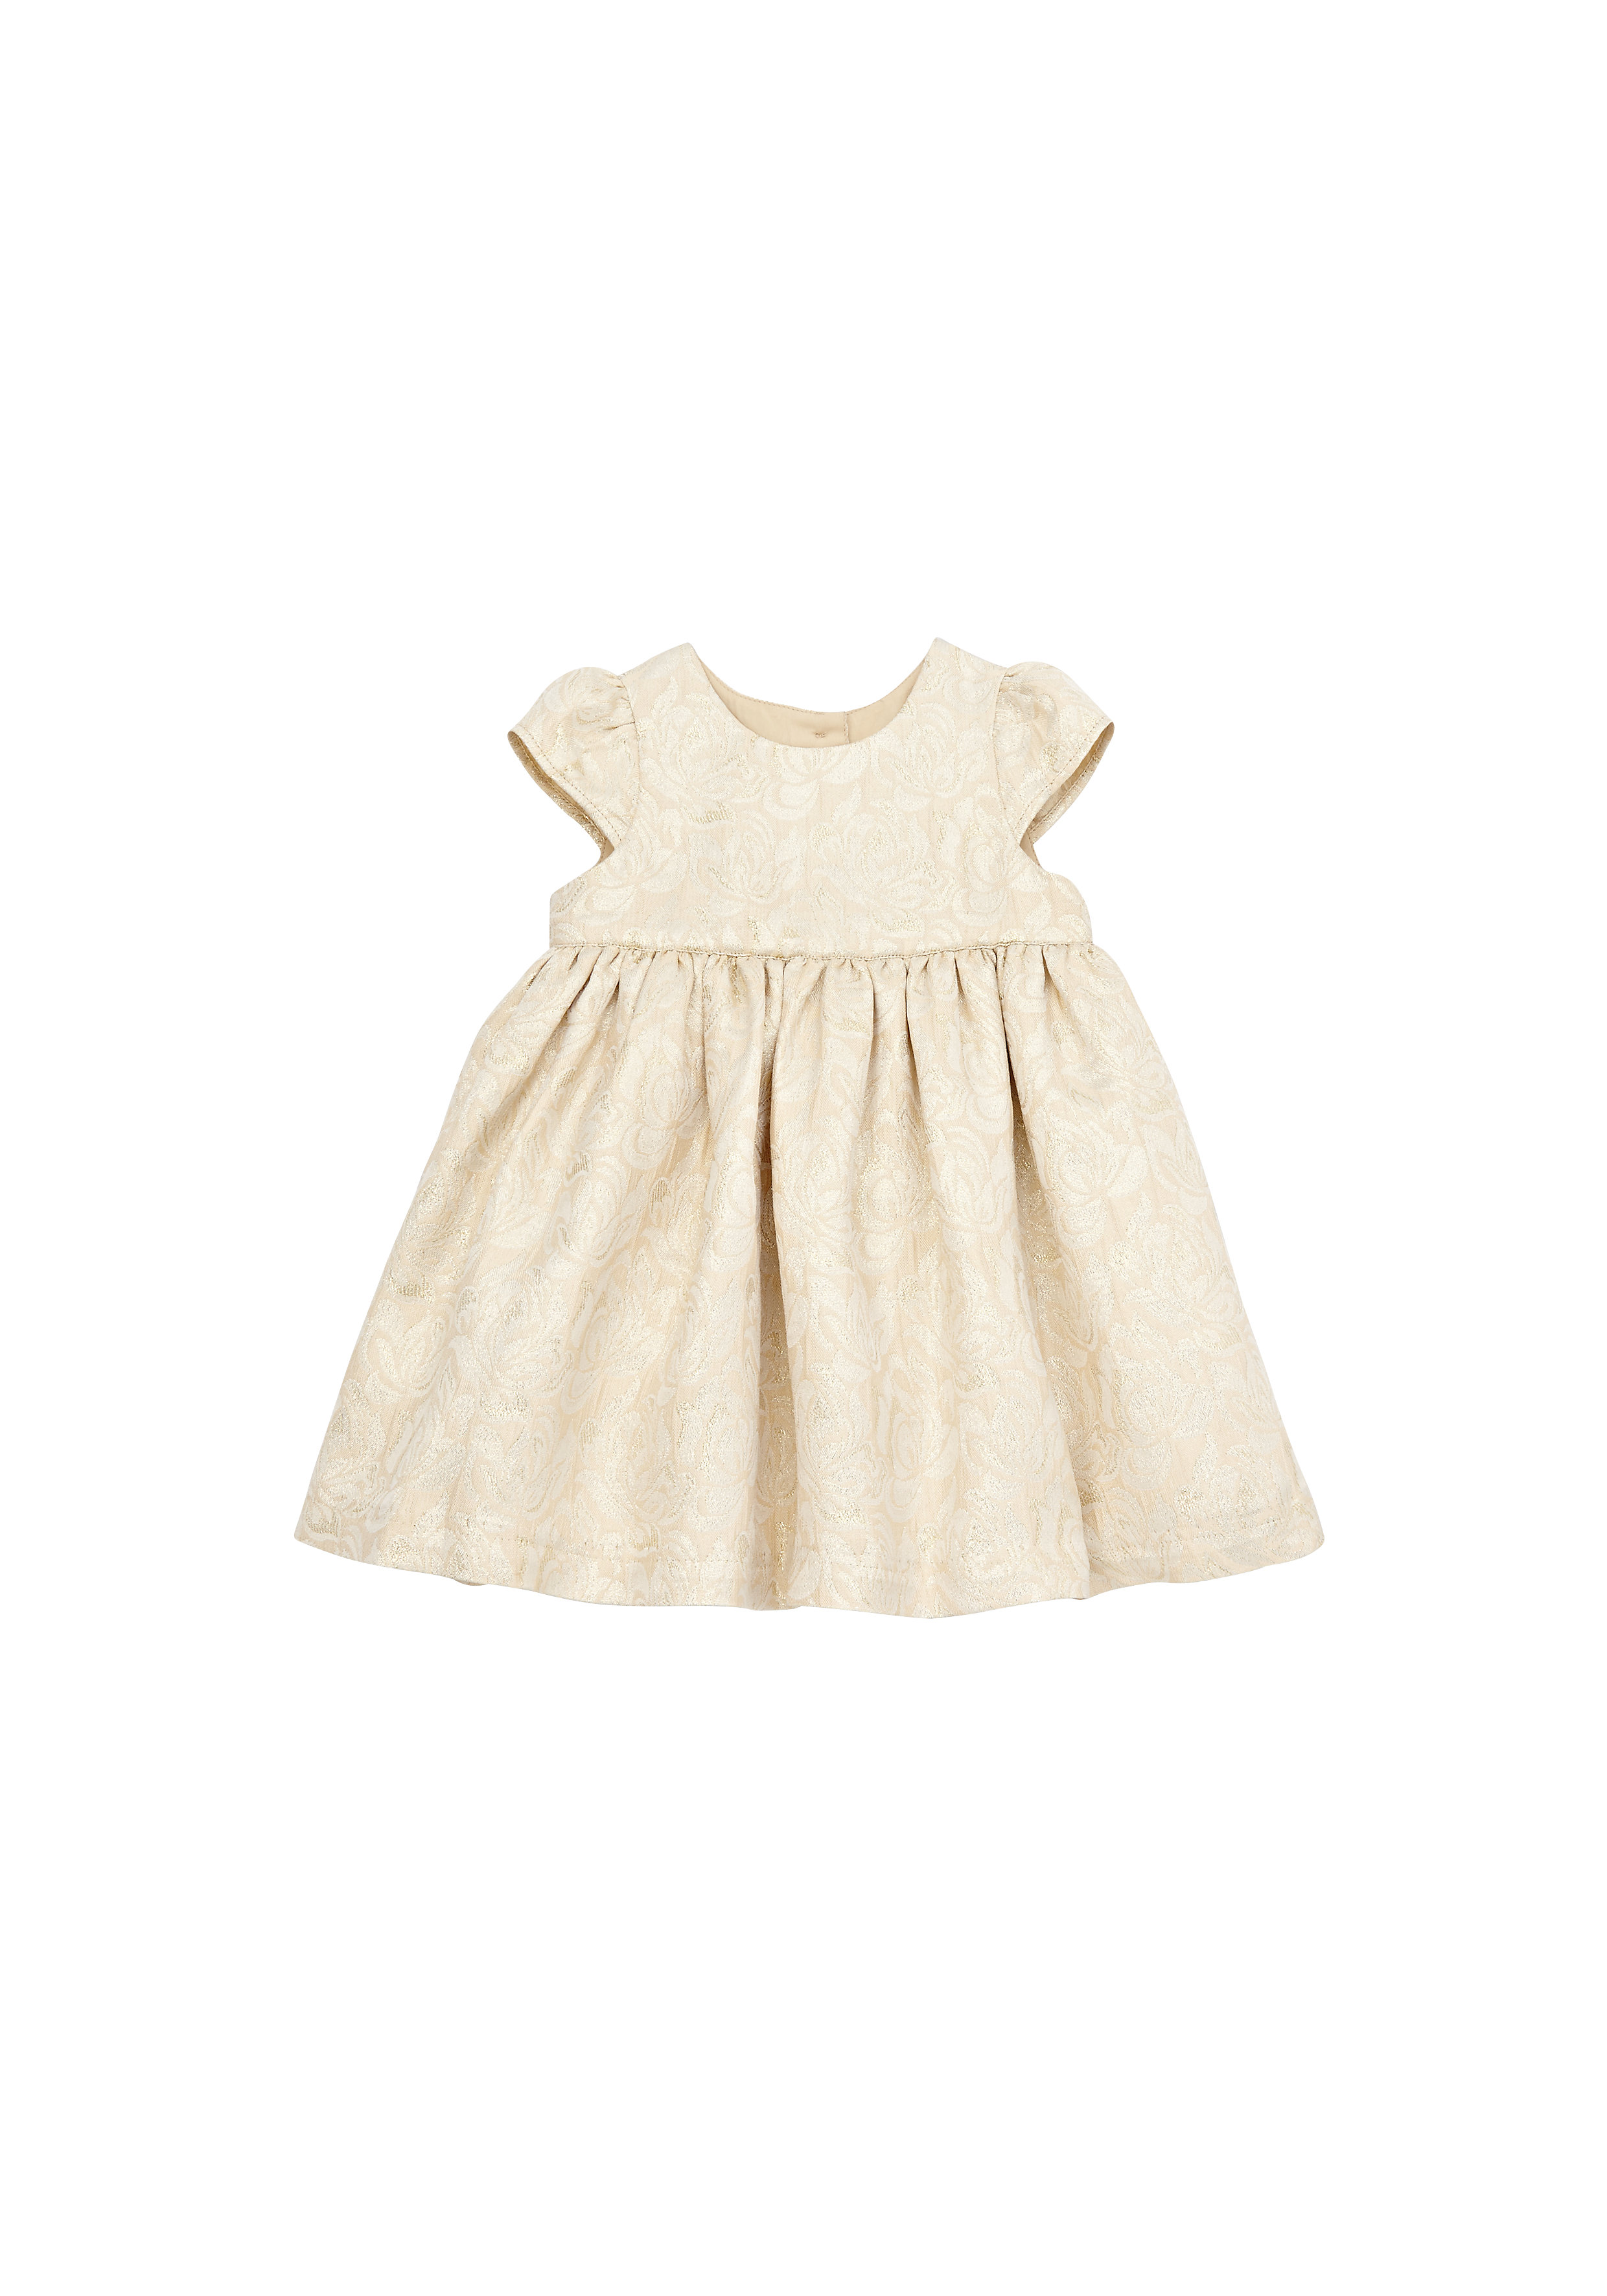 Mothercare | Girls Half Sleeves Party Dress - Yellow